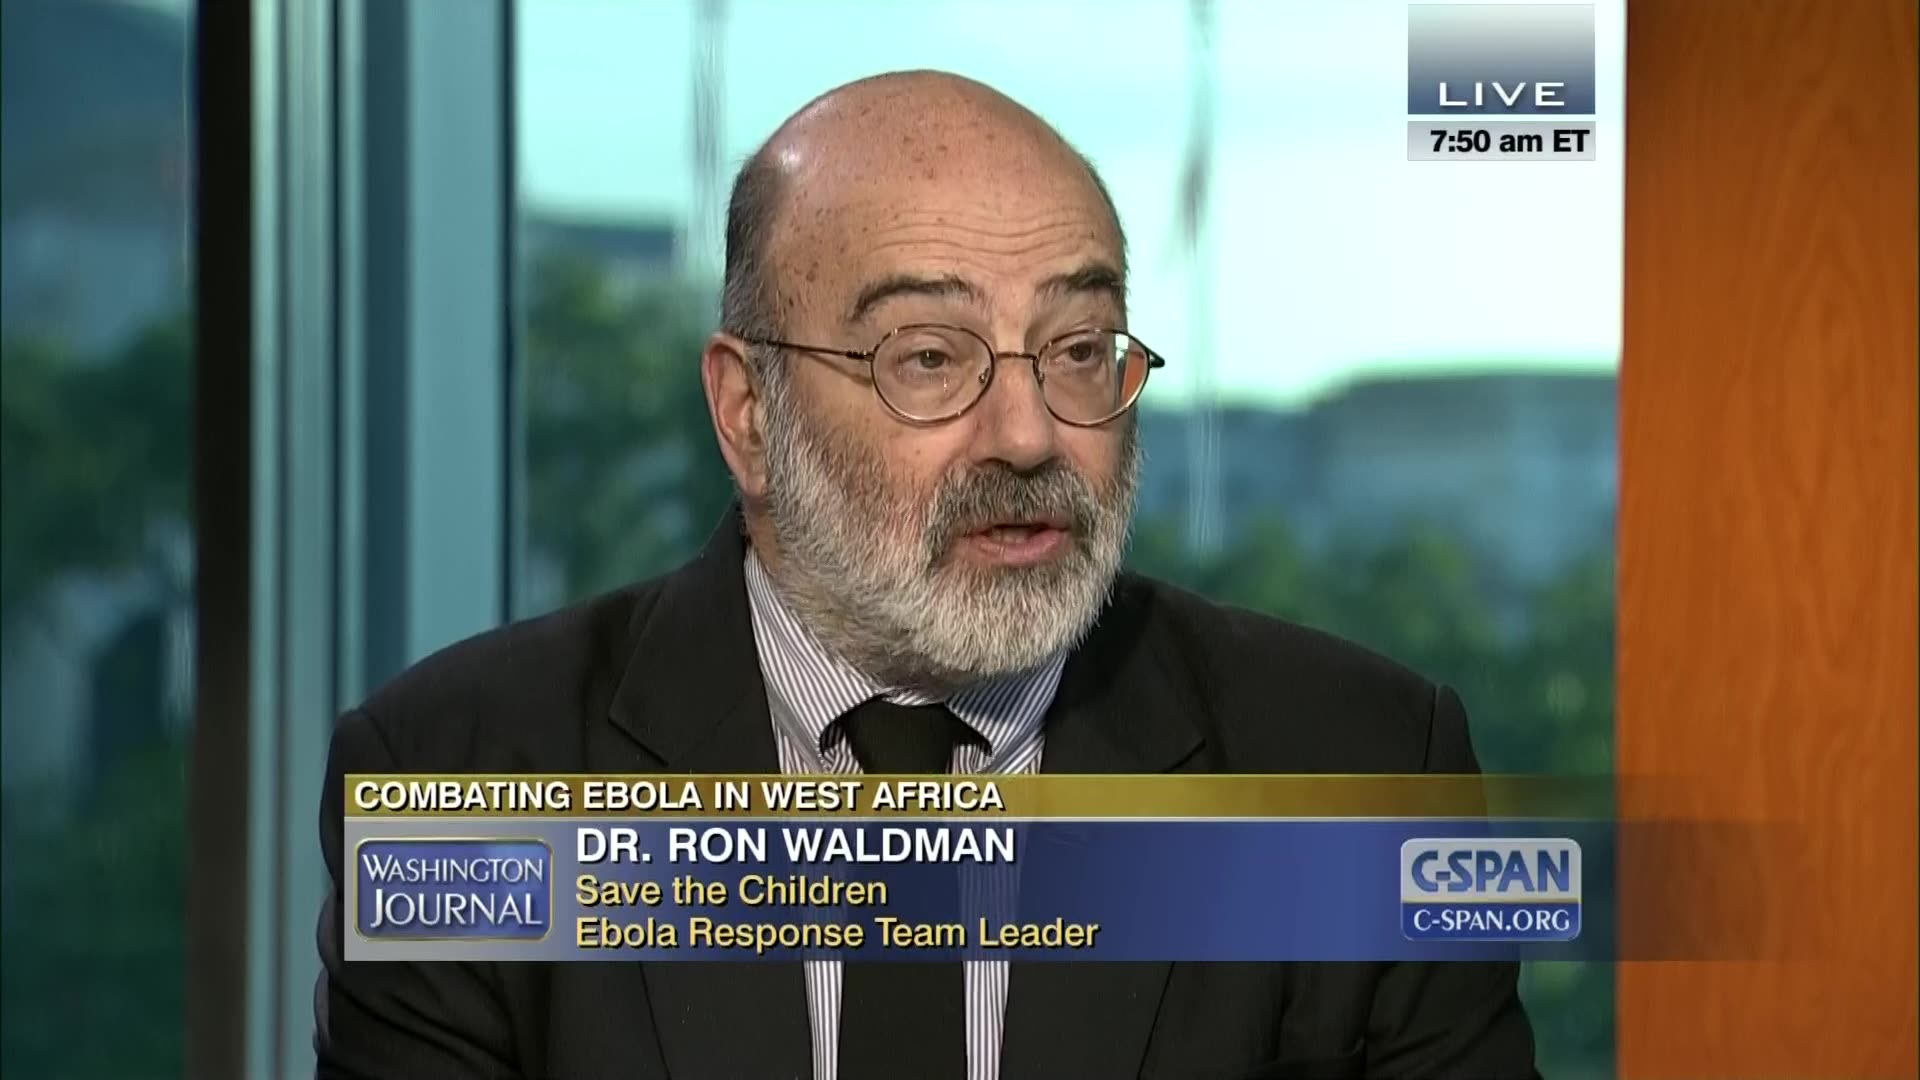 Role of Non-Government Organizations in Fighting Ebola | C-SPAN.org